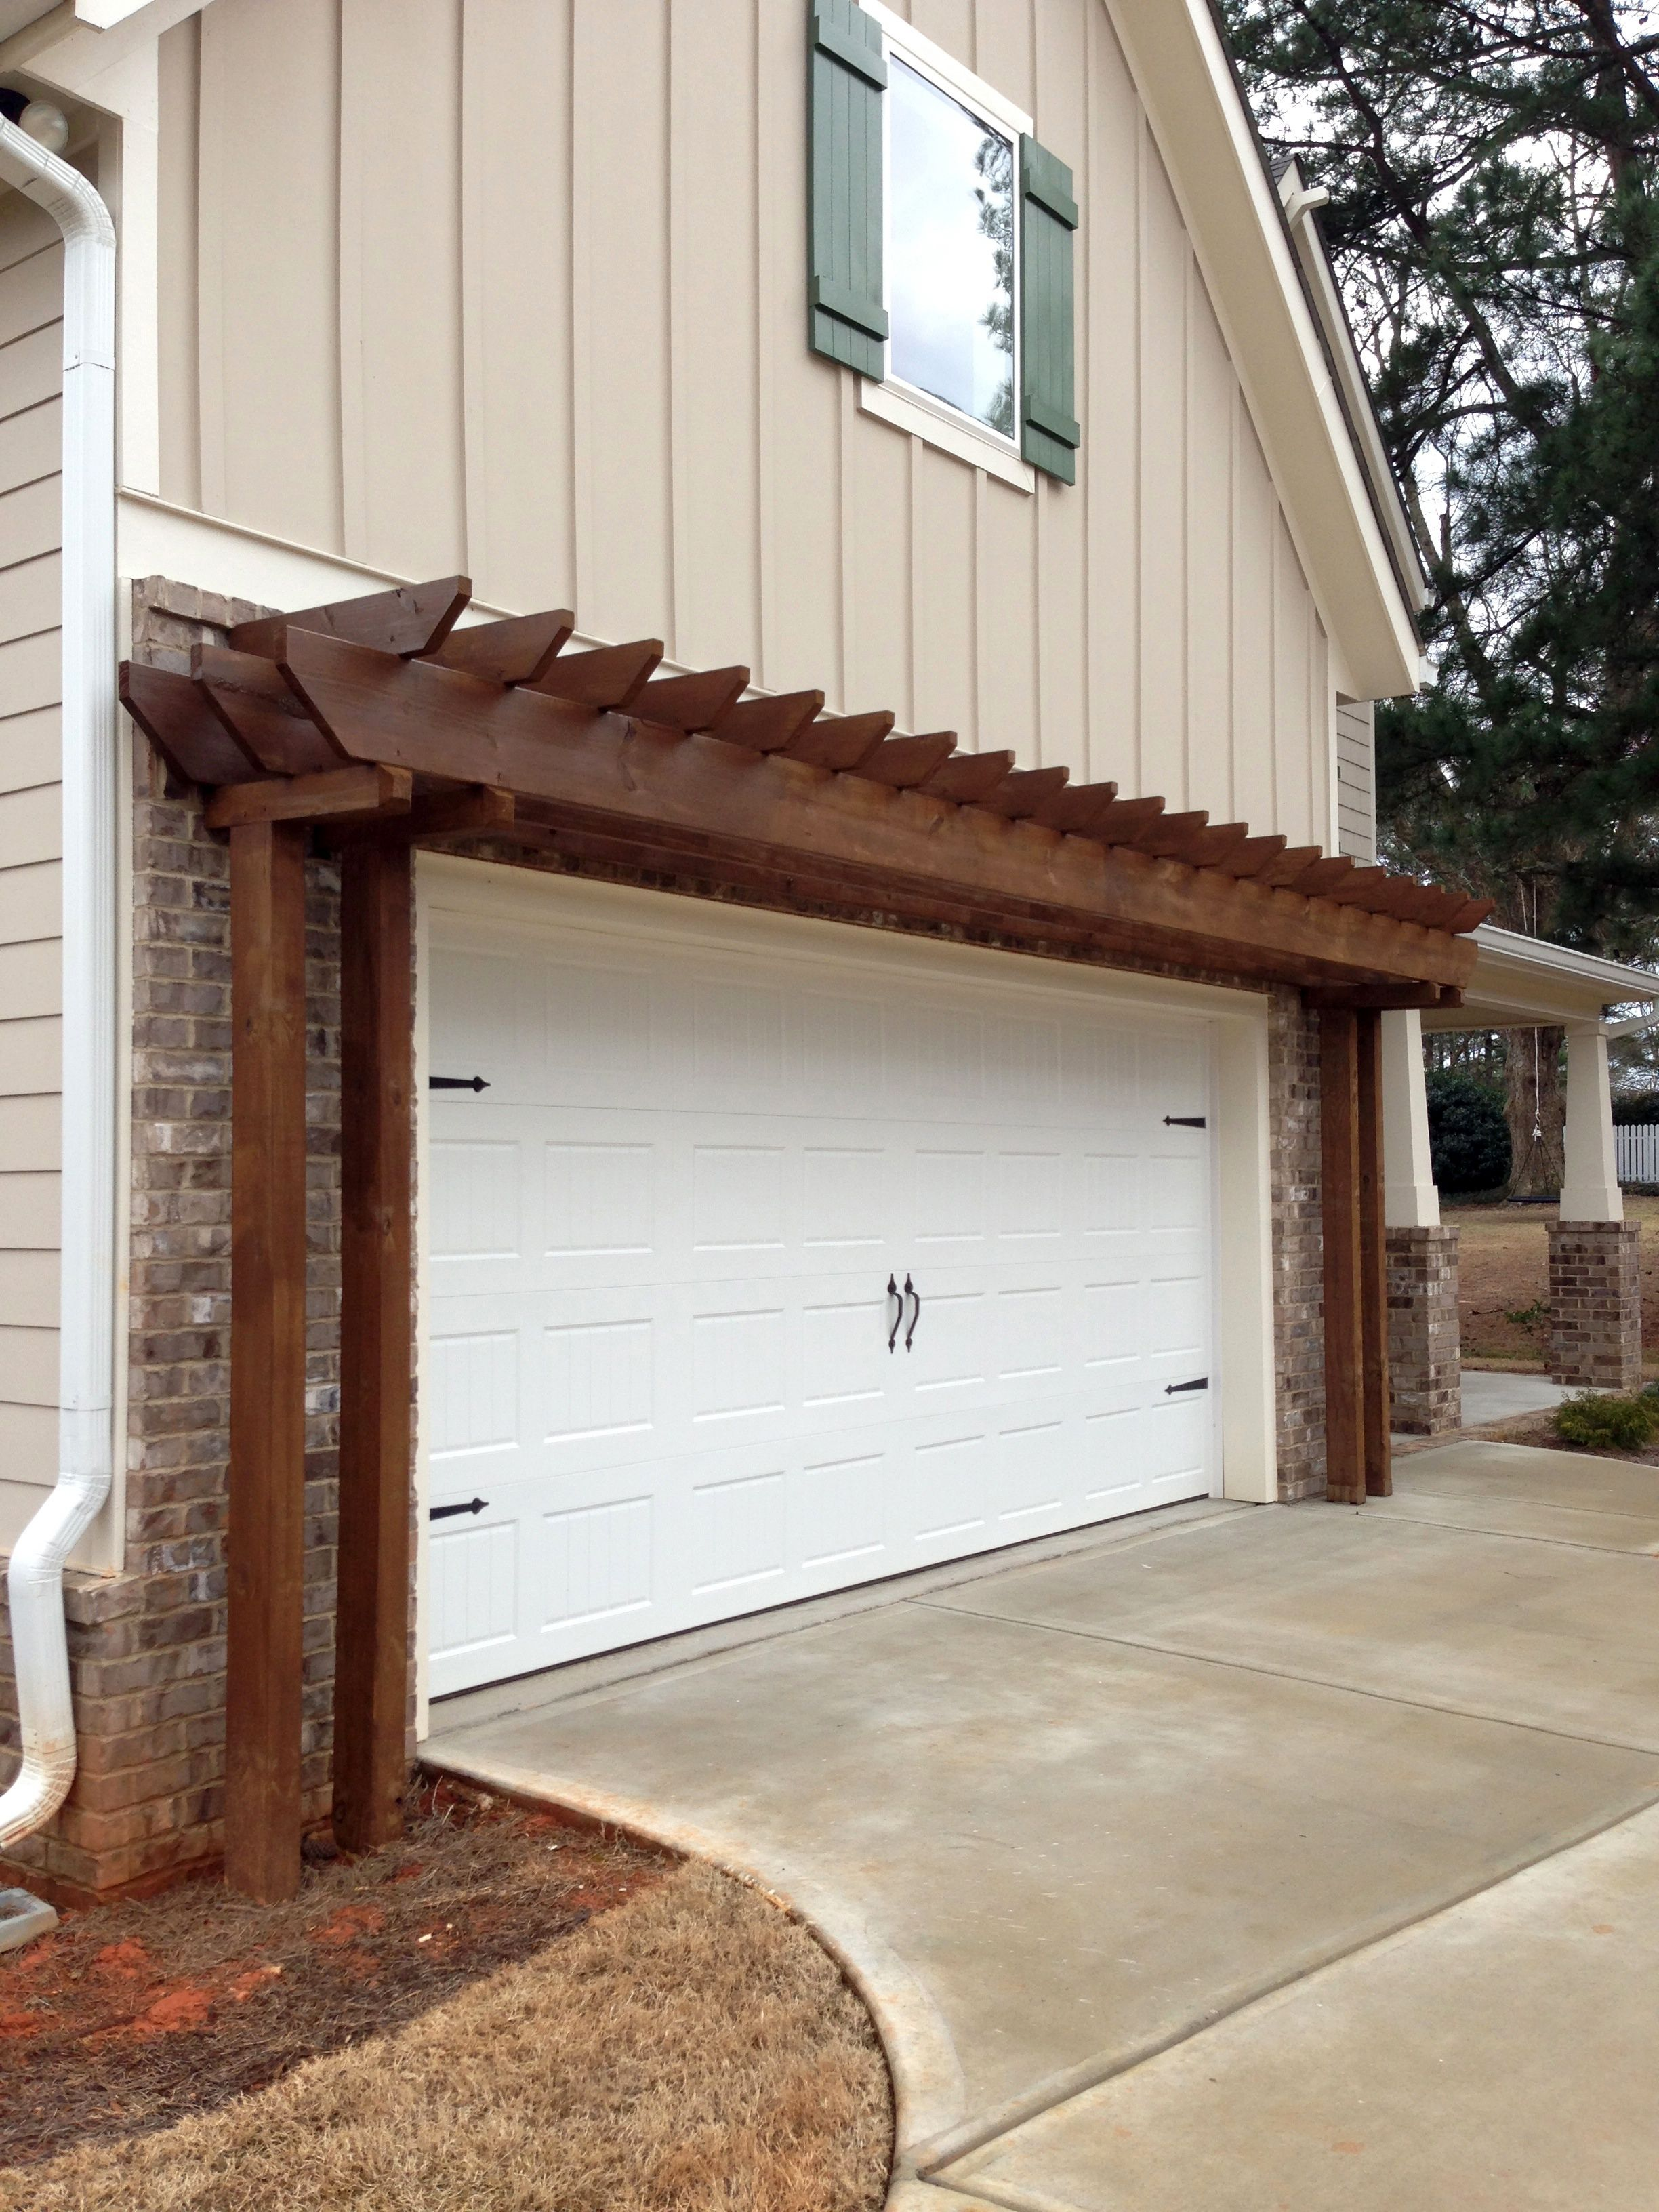 Trellis over garage door - 17 Best Images About Trellis Vines On Pinterest Diy Trellis Garage And Carriage House Garage Doors